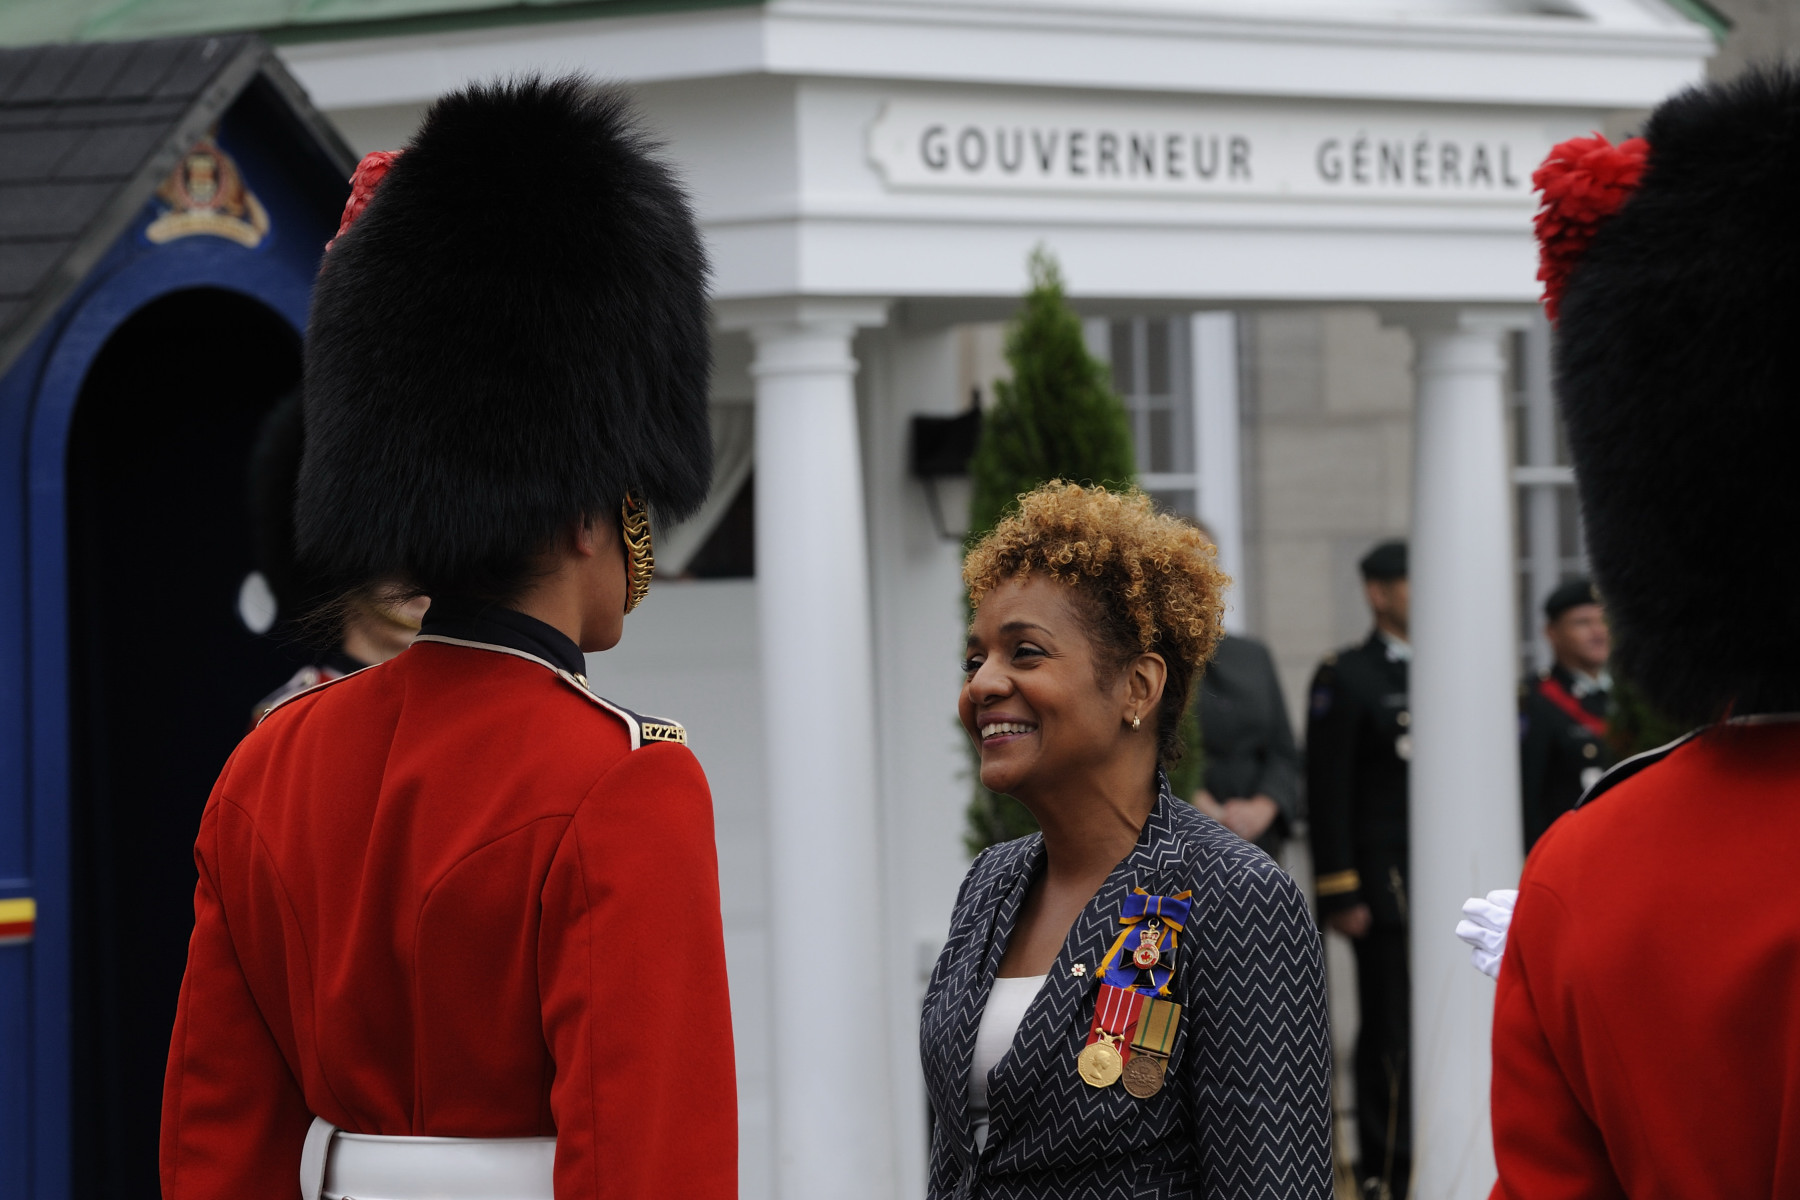 Upon her arrival, the Governor General conducted the inspection of the guard of honour.